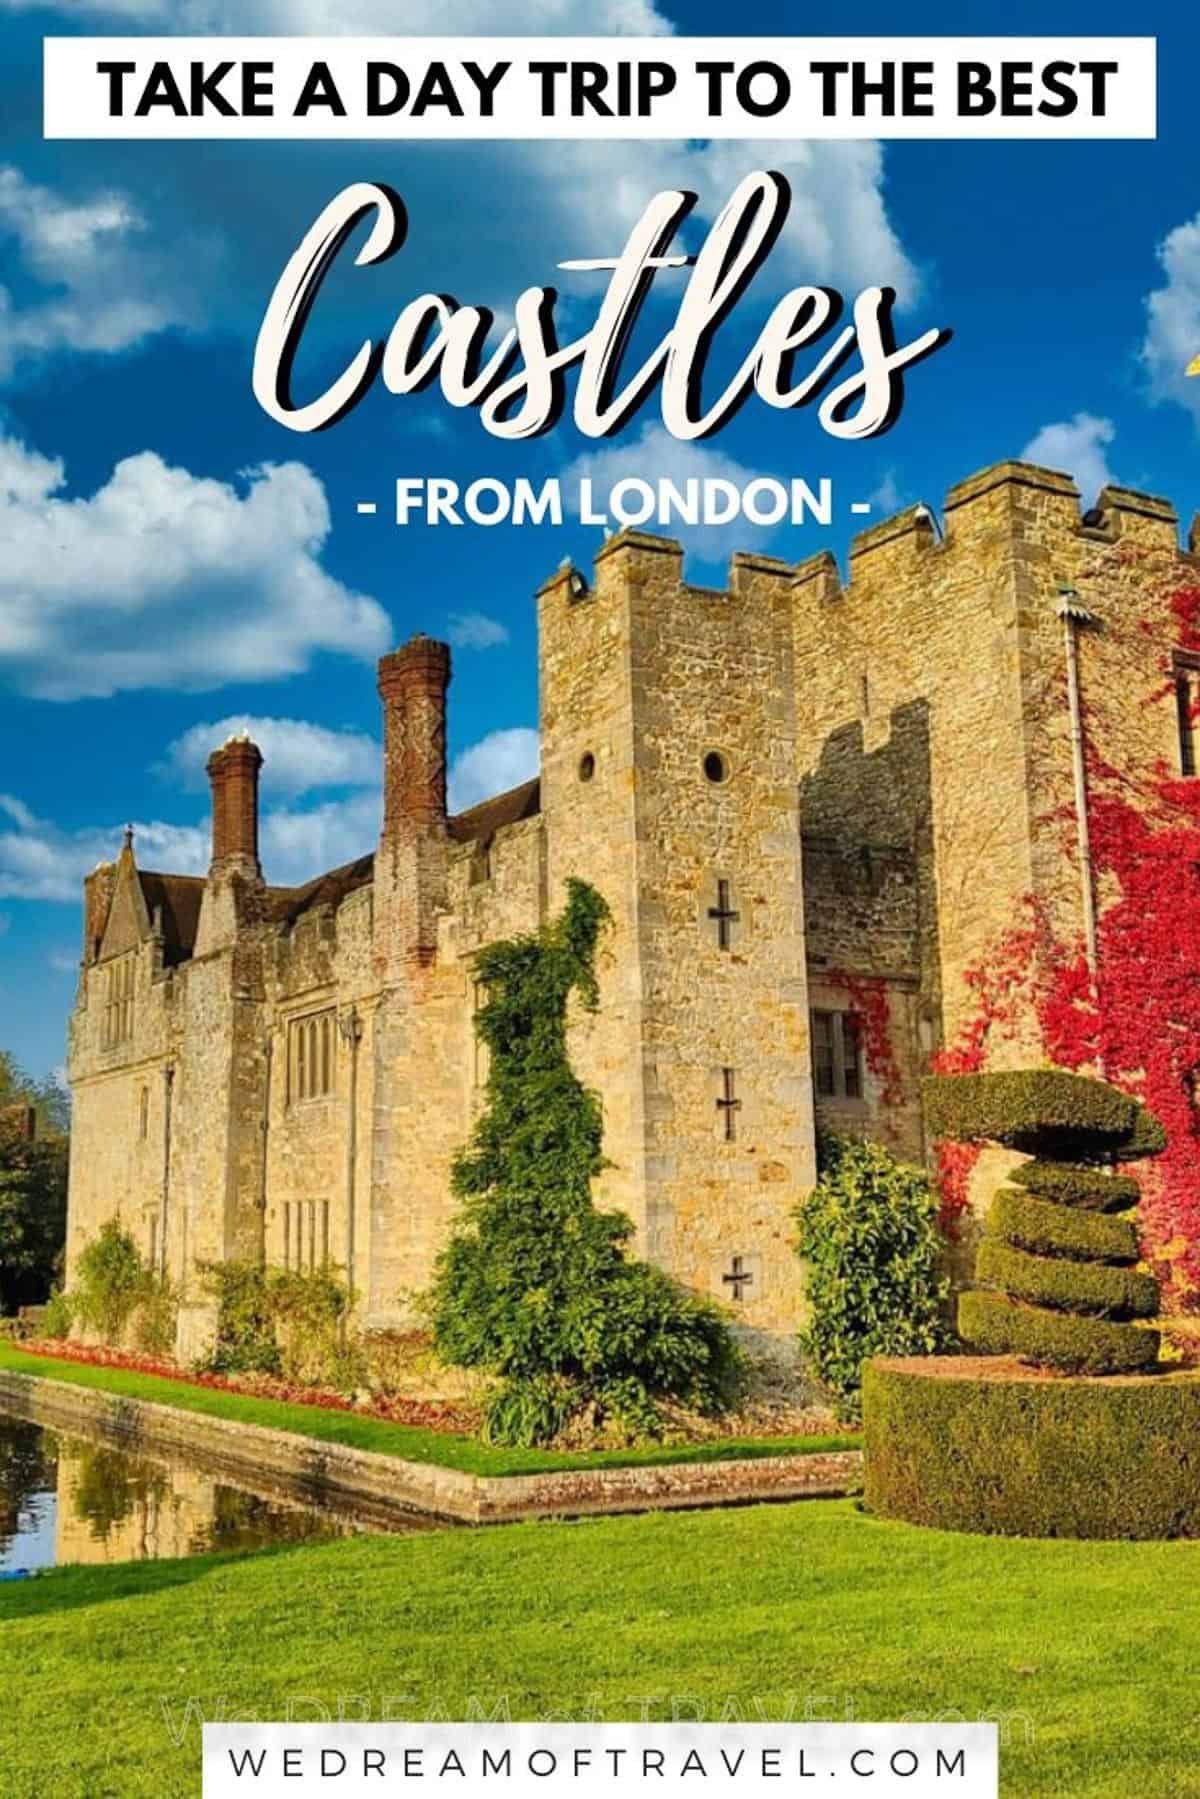 Discover the best castles near London.  14 fairytale English castles you can visit on an easy day trip from London. #england #castles #london